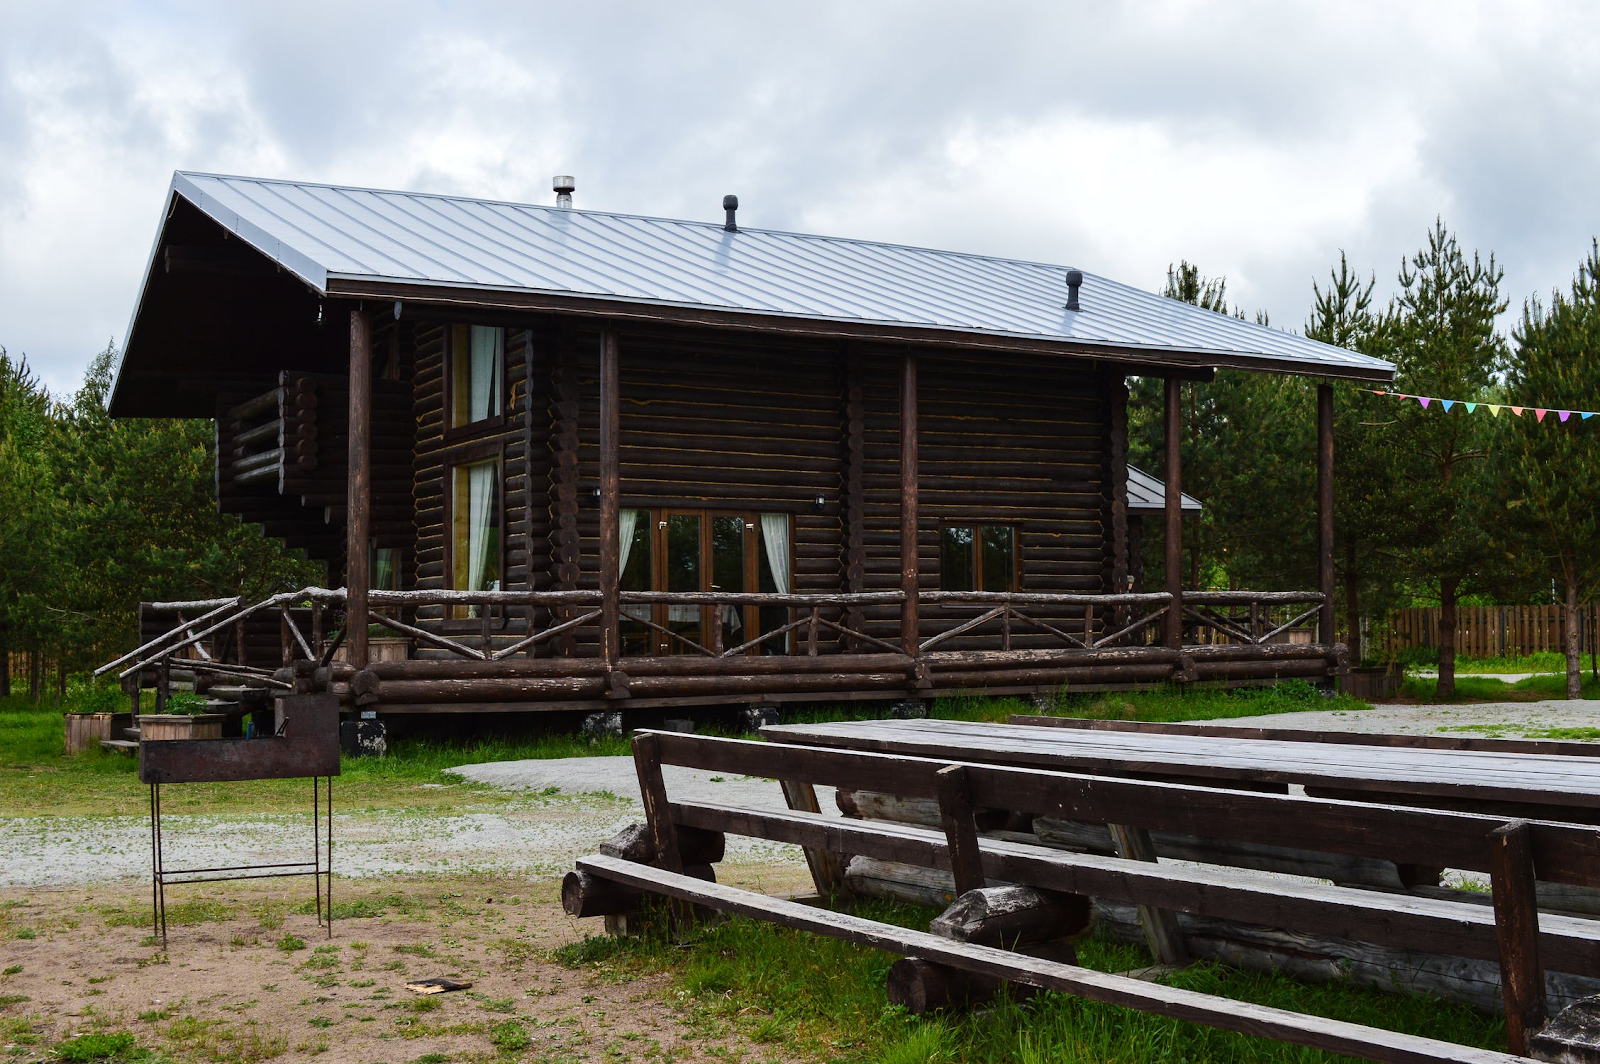 An image showing rental cabins available at many of the campgrounds on this list.